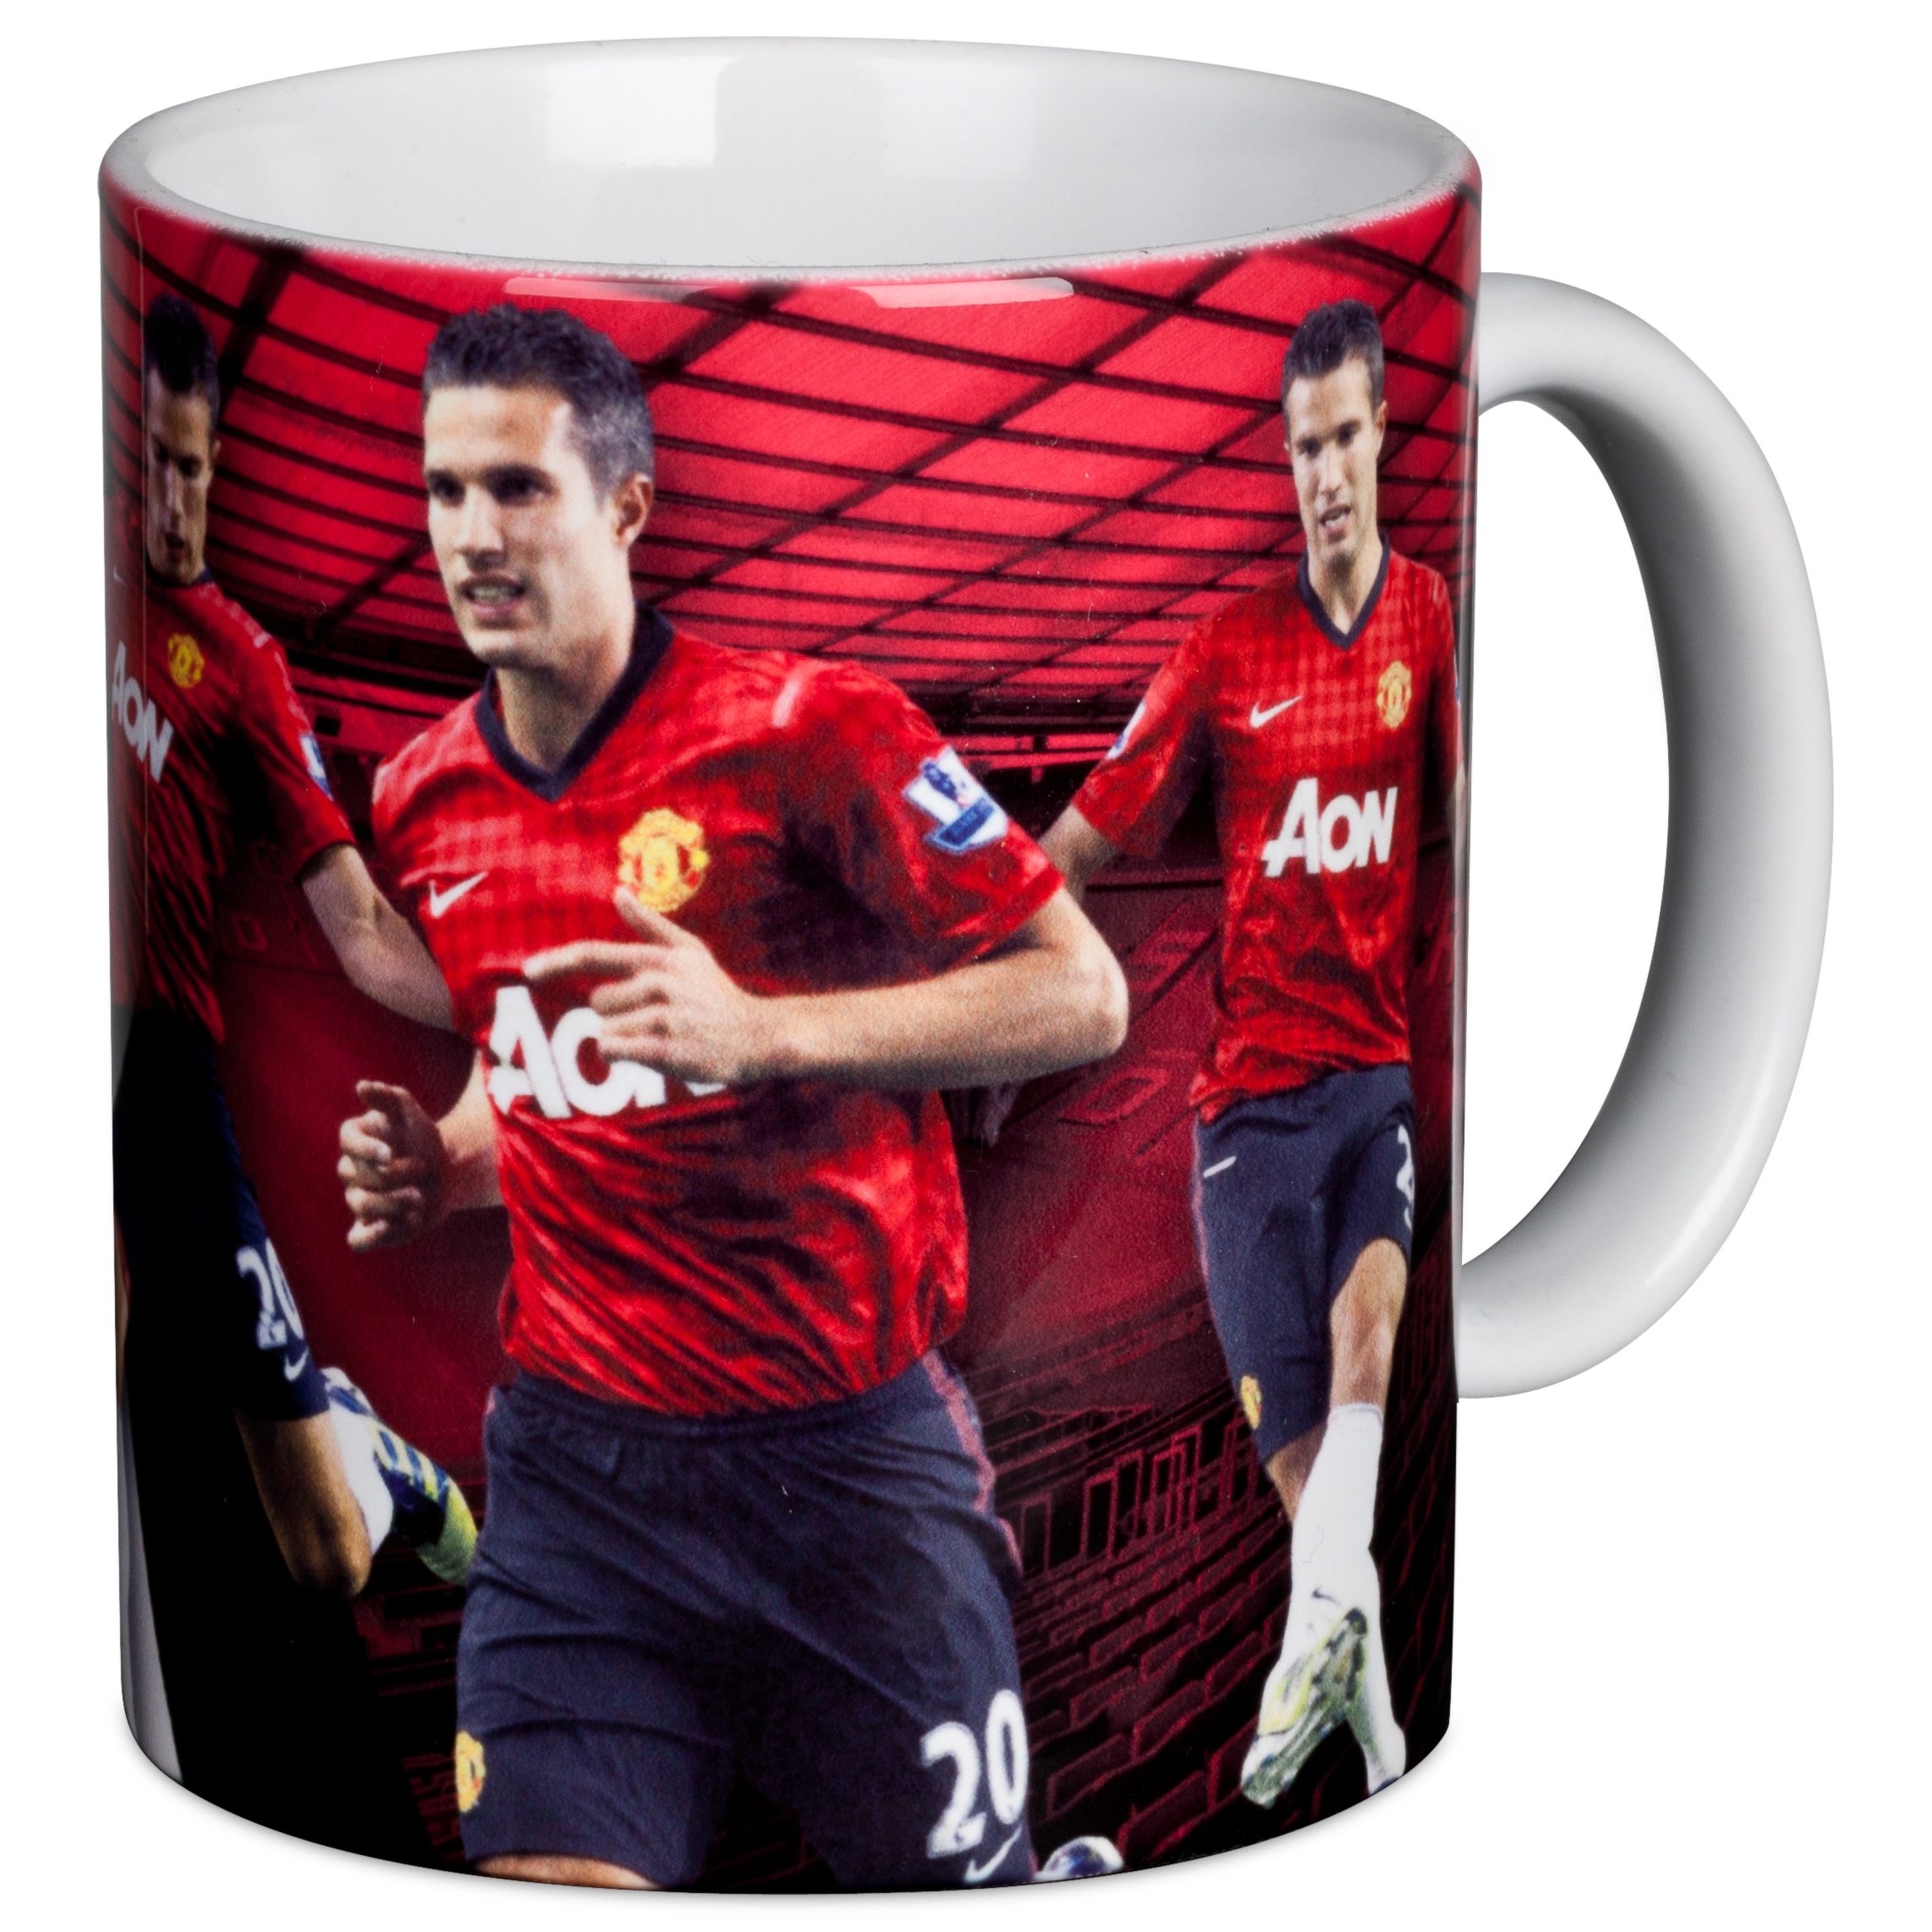 Manchester United RVP 2012/13 Mug